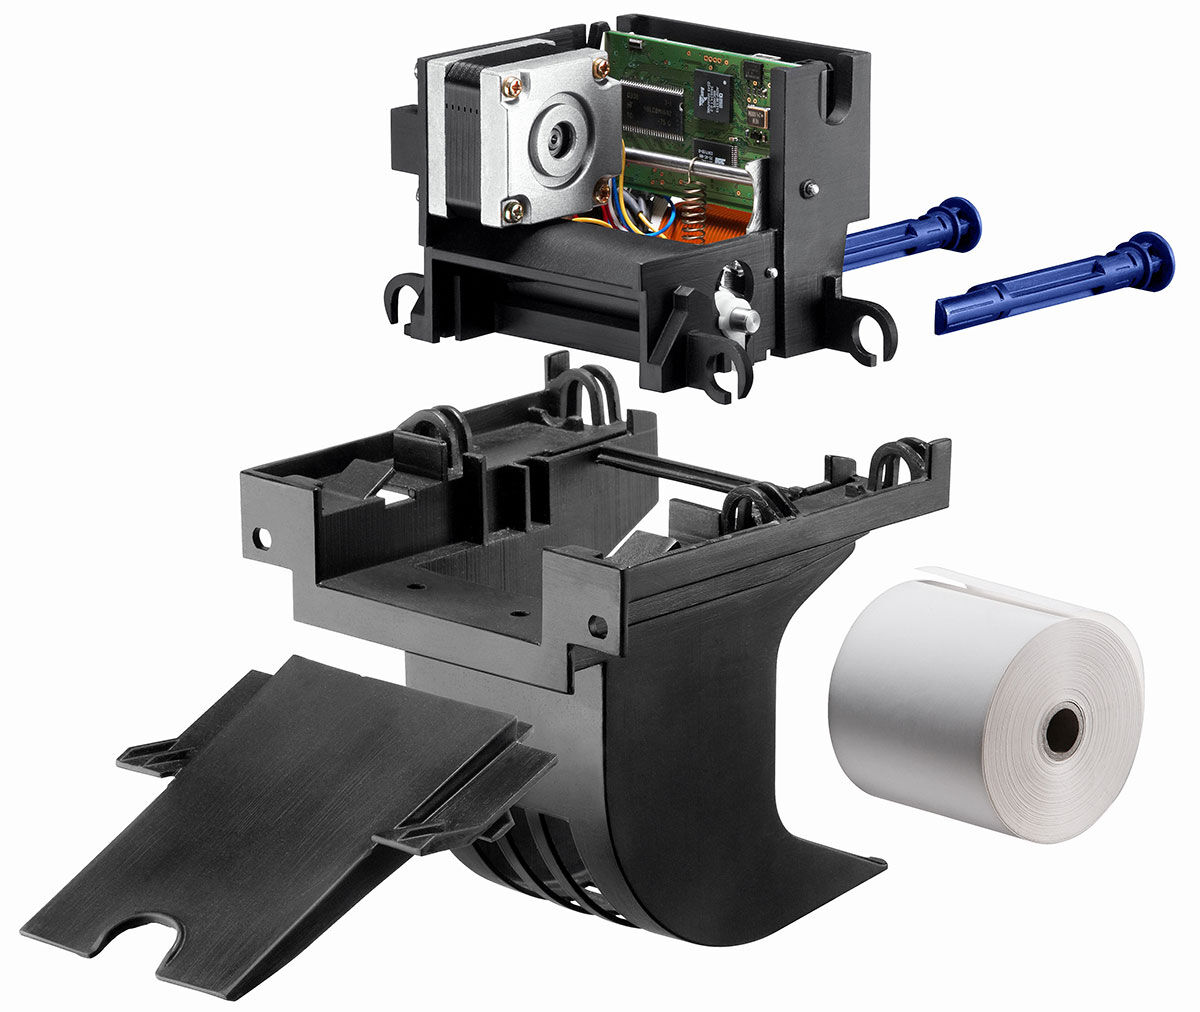 The parts that go into a C56 thermal printer